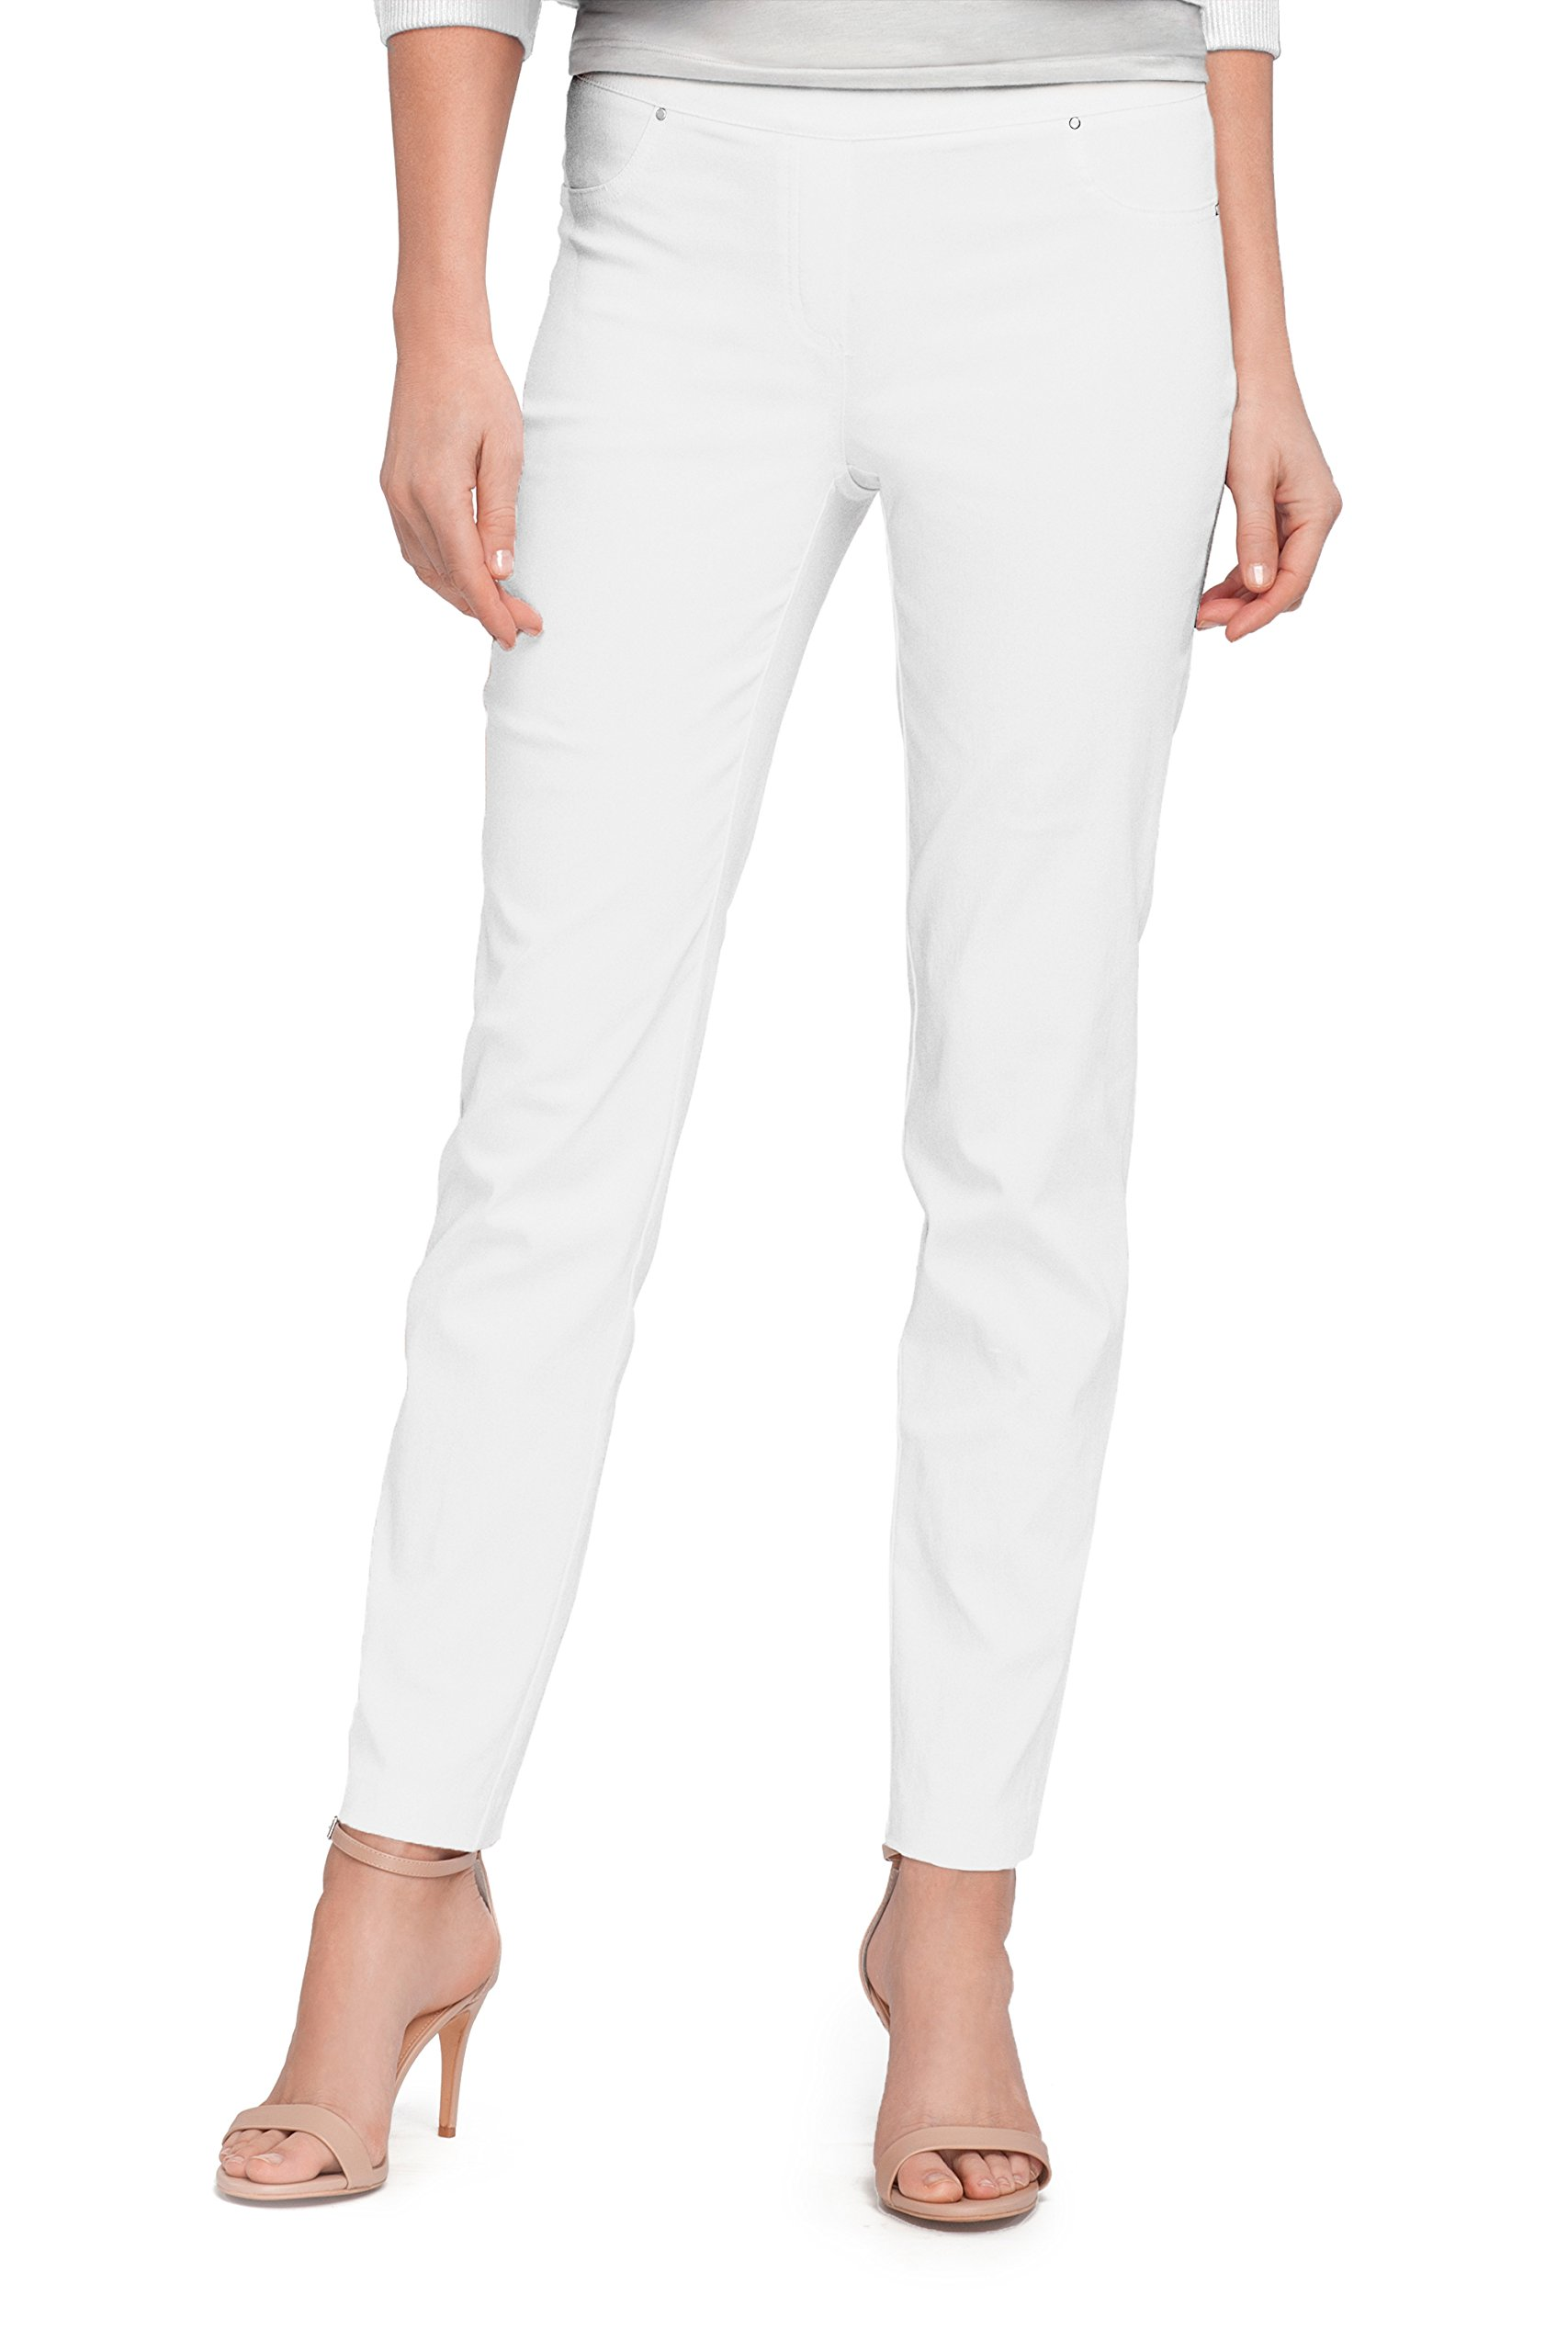 89th & Madison Solid Millennium Ankle Pant (S, White)